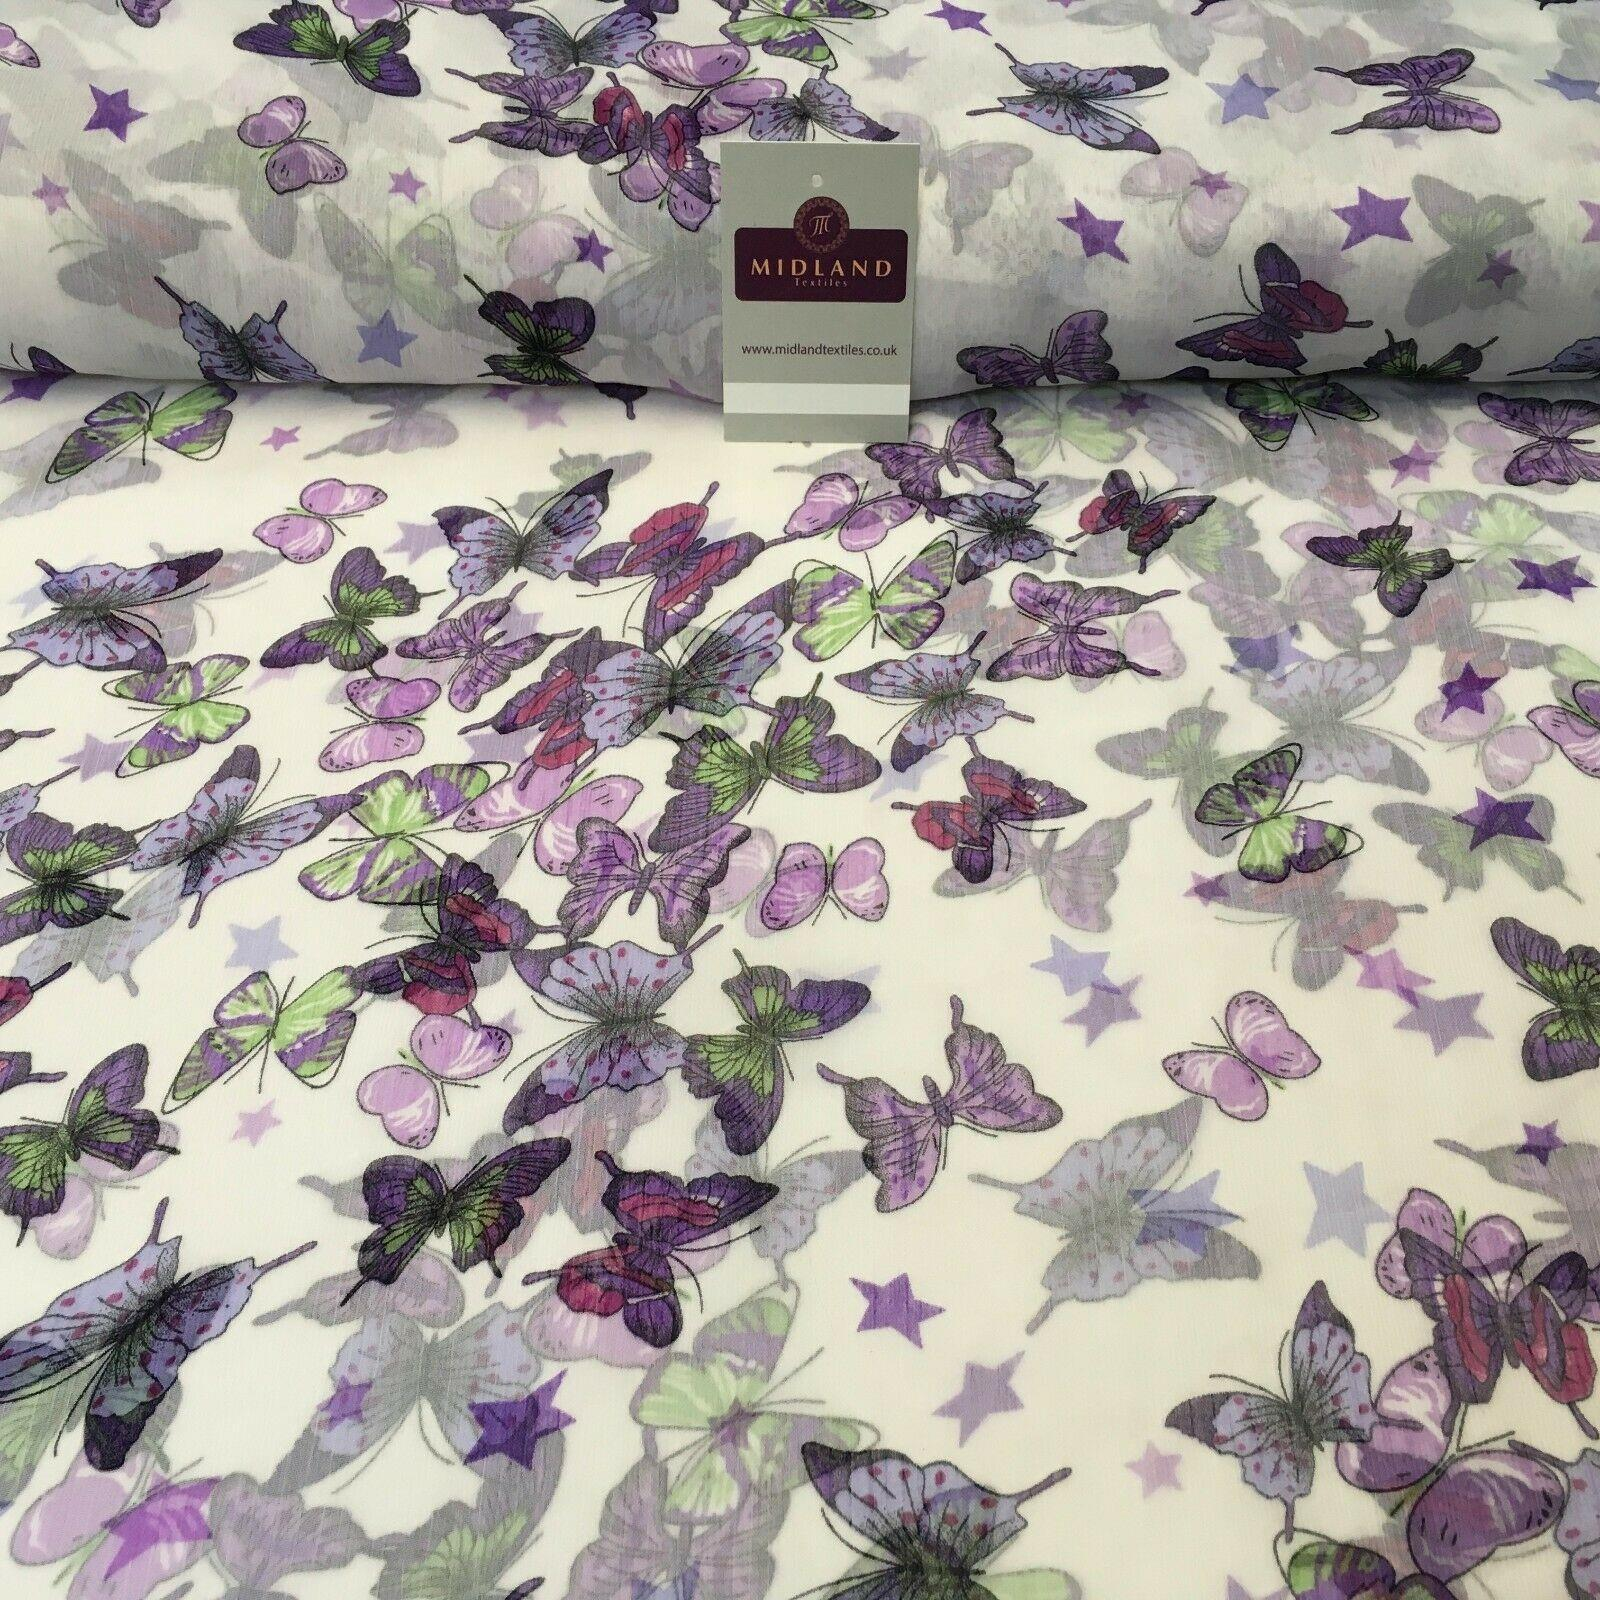 Lilac Butterfly printed Crinkle Georgette Chiffon fabric 150cm wide MK1090-14